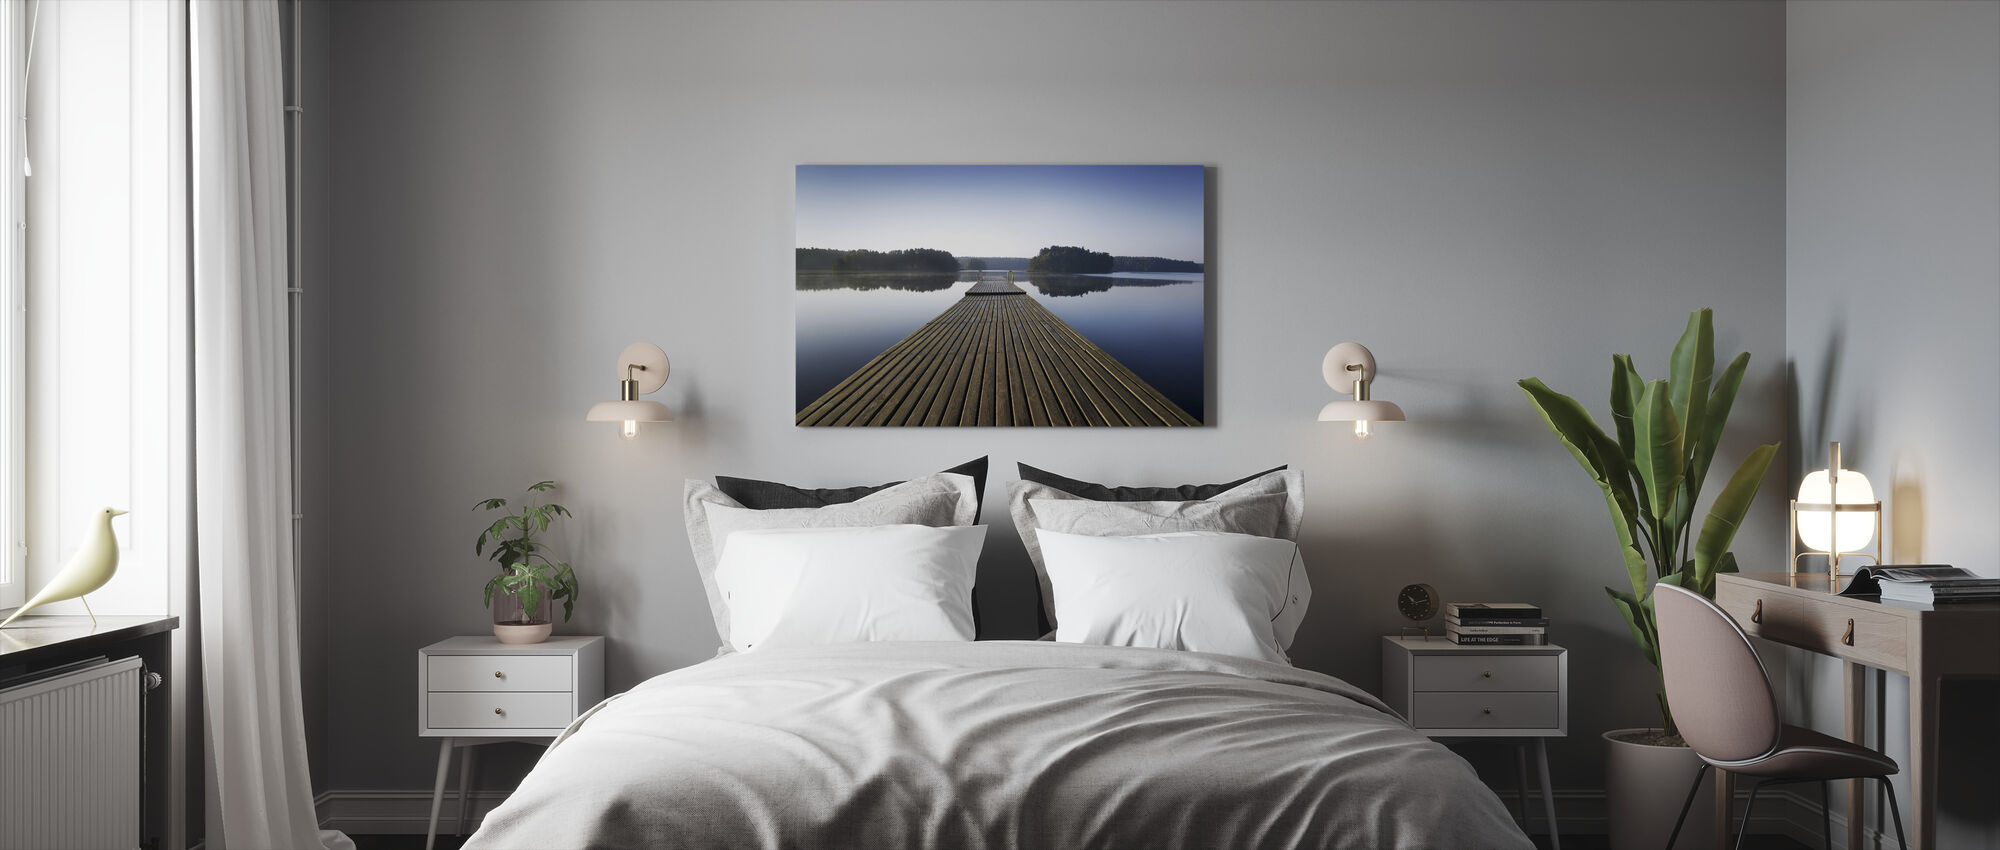 Wooden Pier at Morning - Canvas print - Bedroom